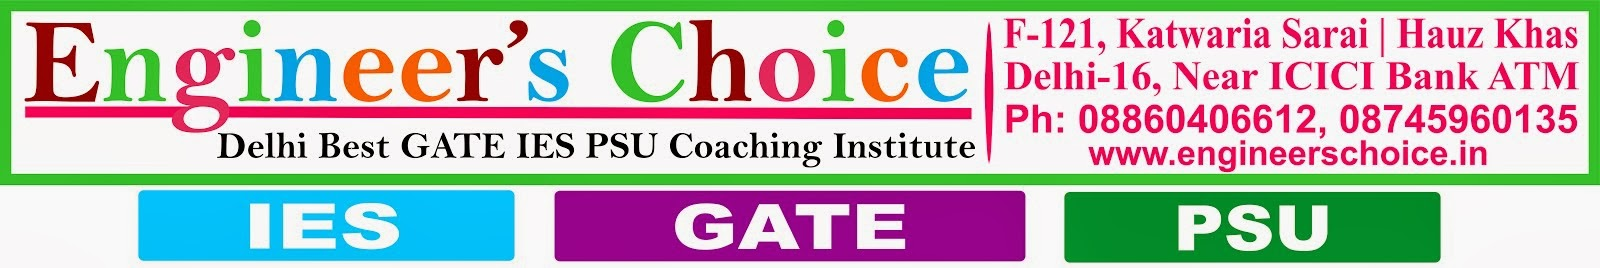 Best GATE Coaching GATE Coaching Institute in Delhi